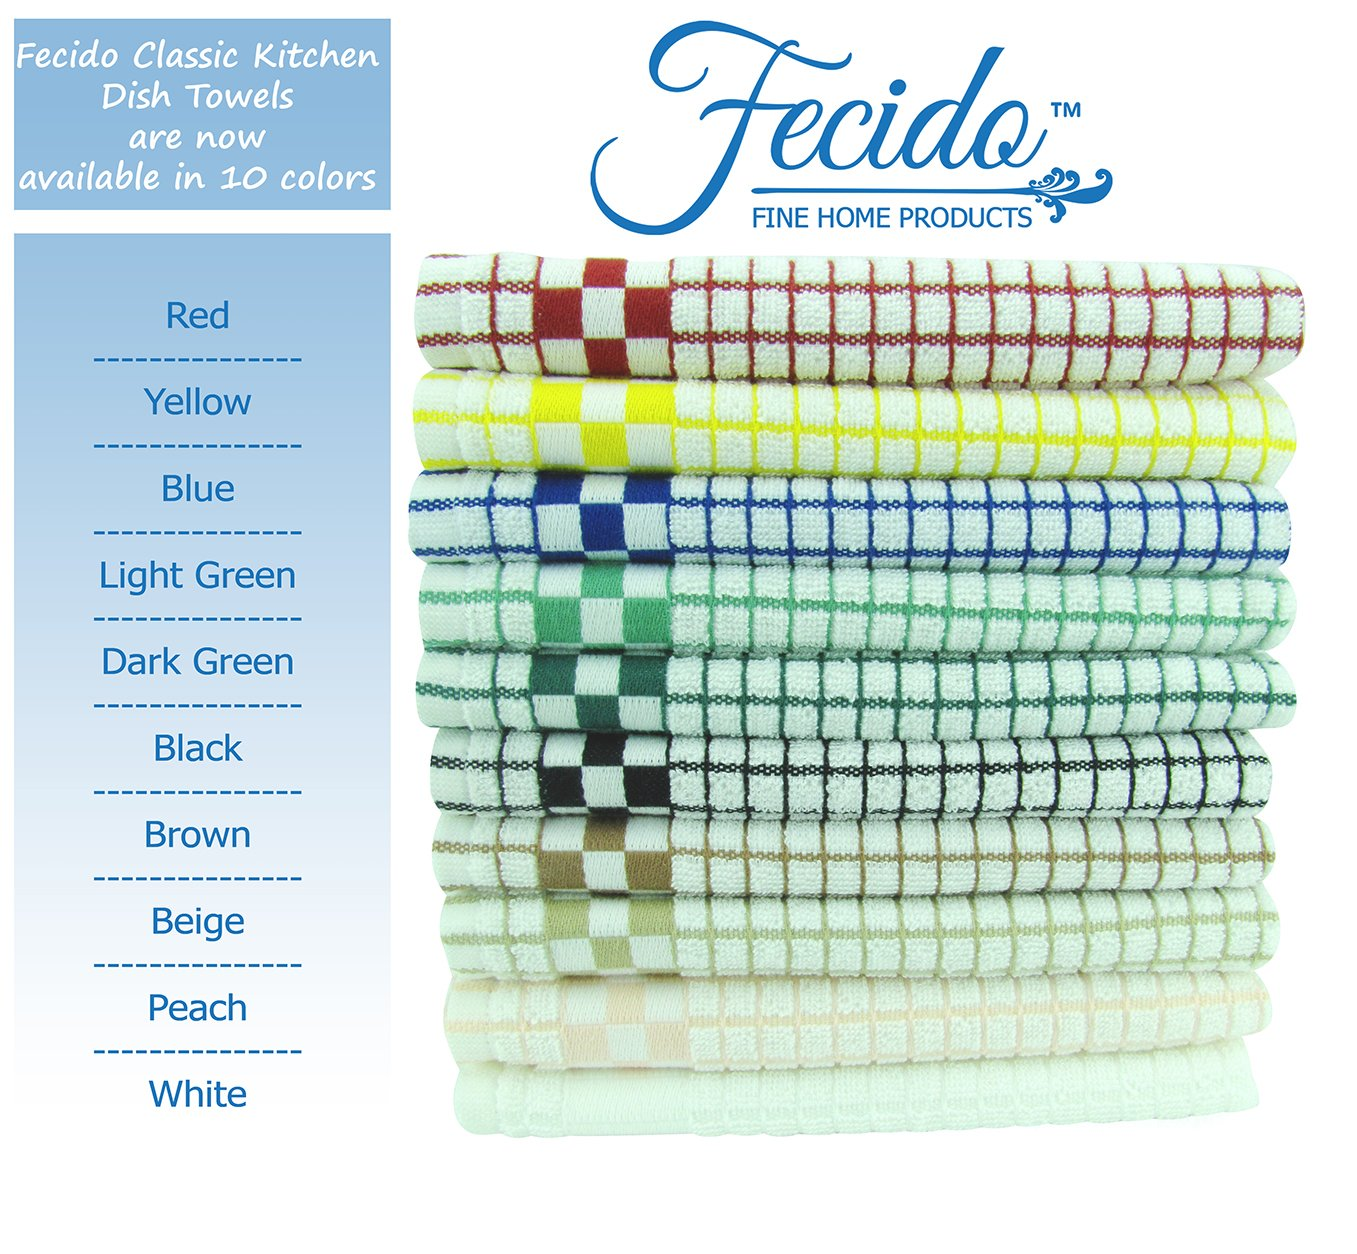 Fecido Classic Kitchen Dish Towels Set - Heavy Duty - Super Absorbent - 100% Cotton - Professional Grade Dish Cloths - European Made Tea Towels - 10 Pack, Multi Color by Fecido (Image #3)